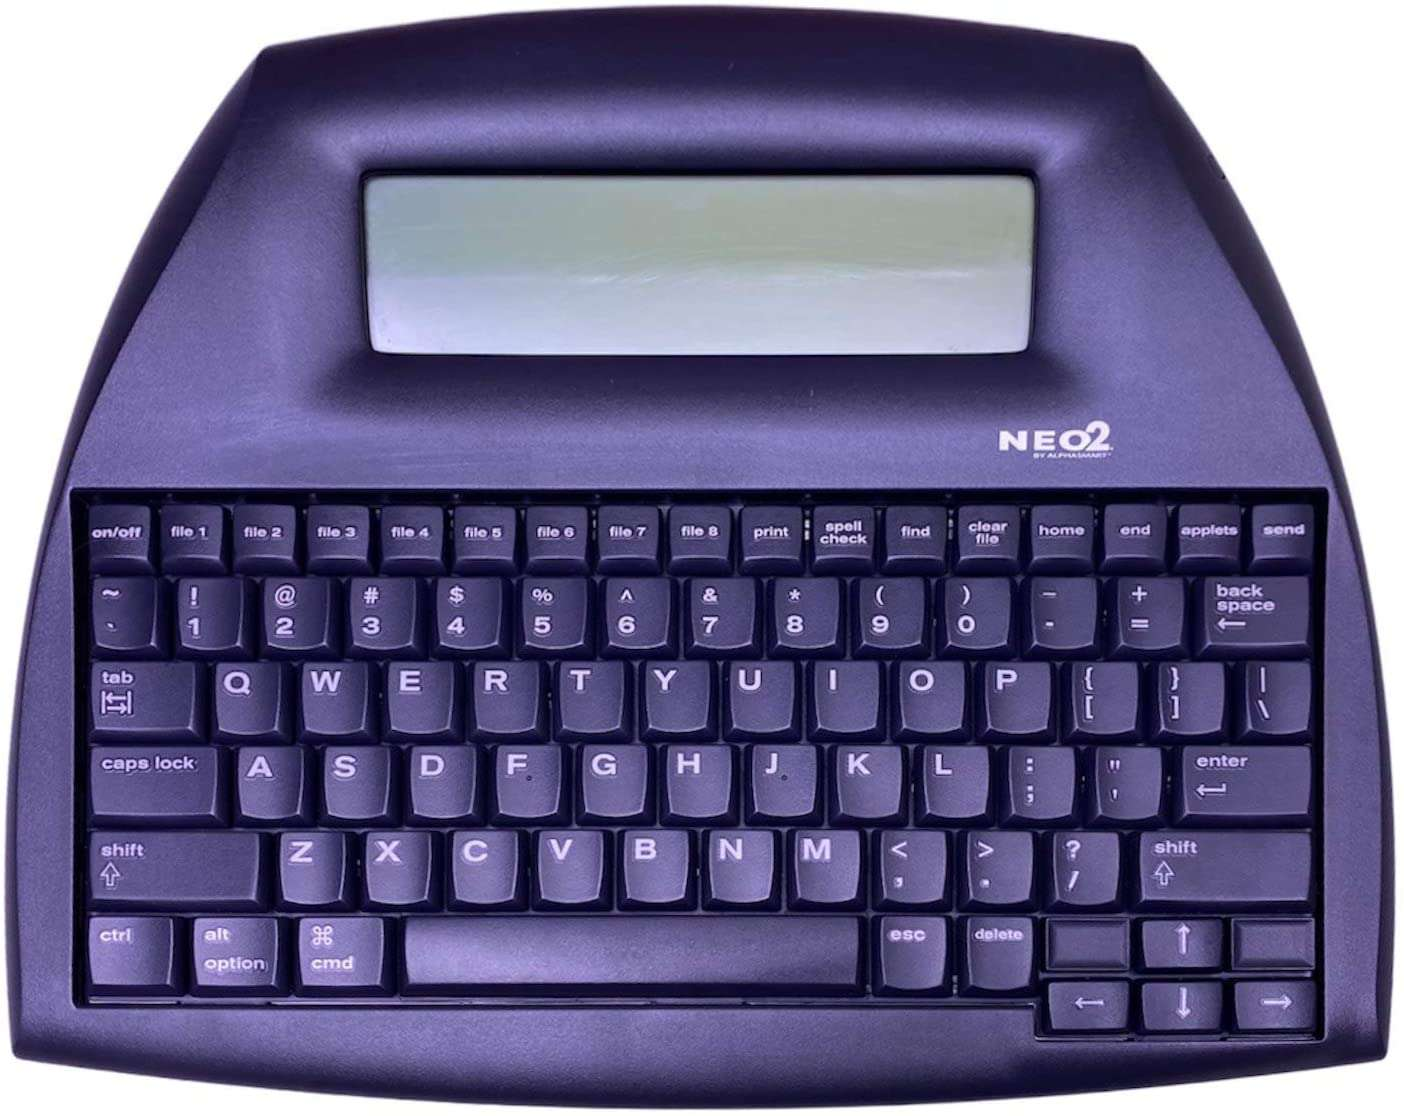 A product image of an Alphasmart Neo 2